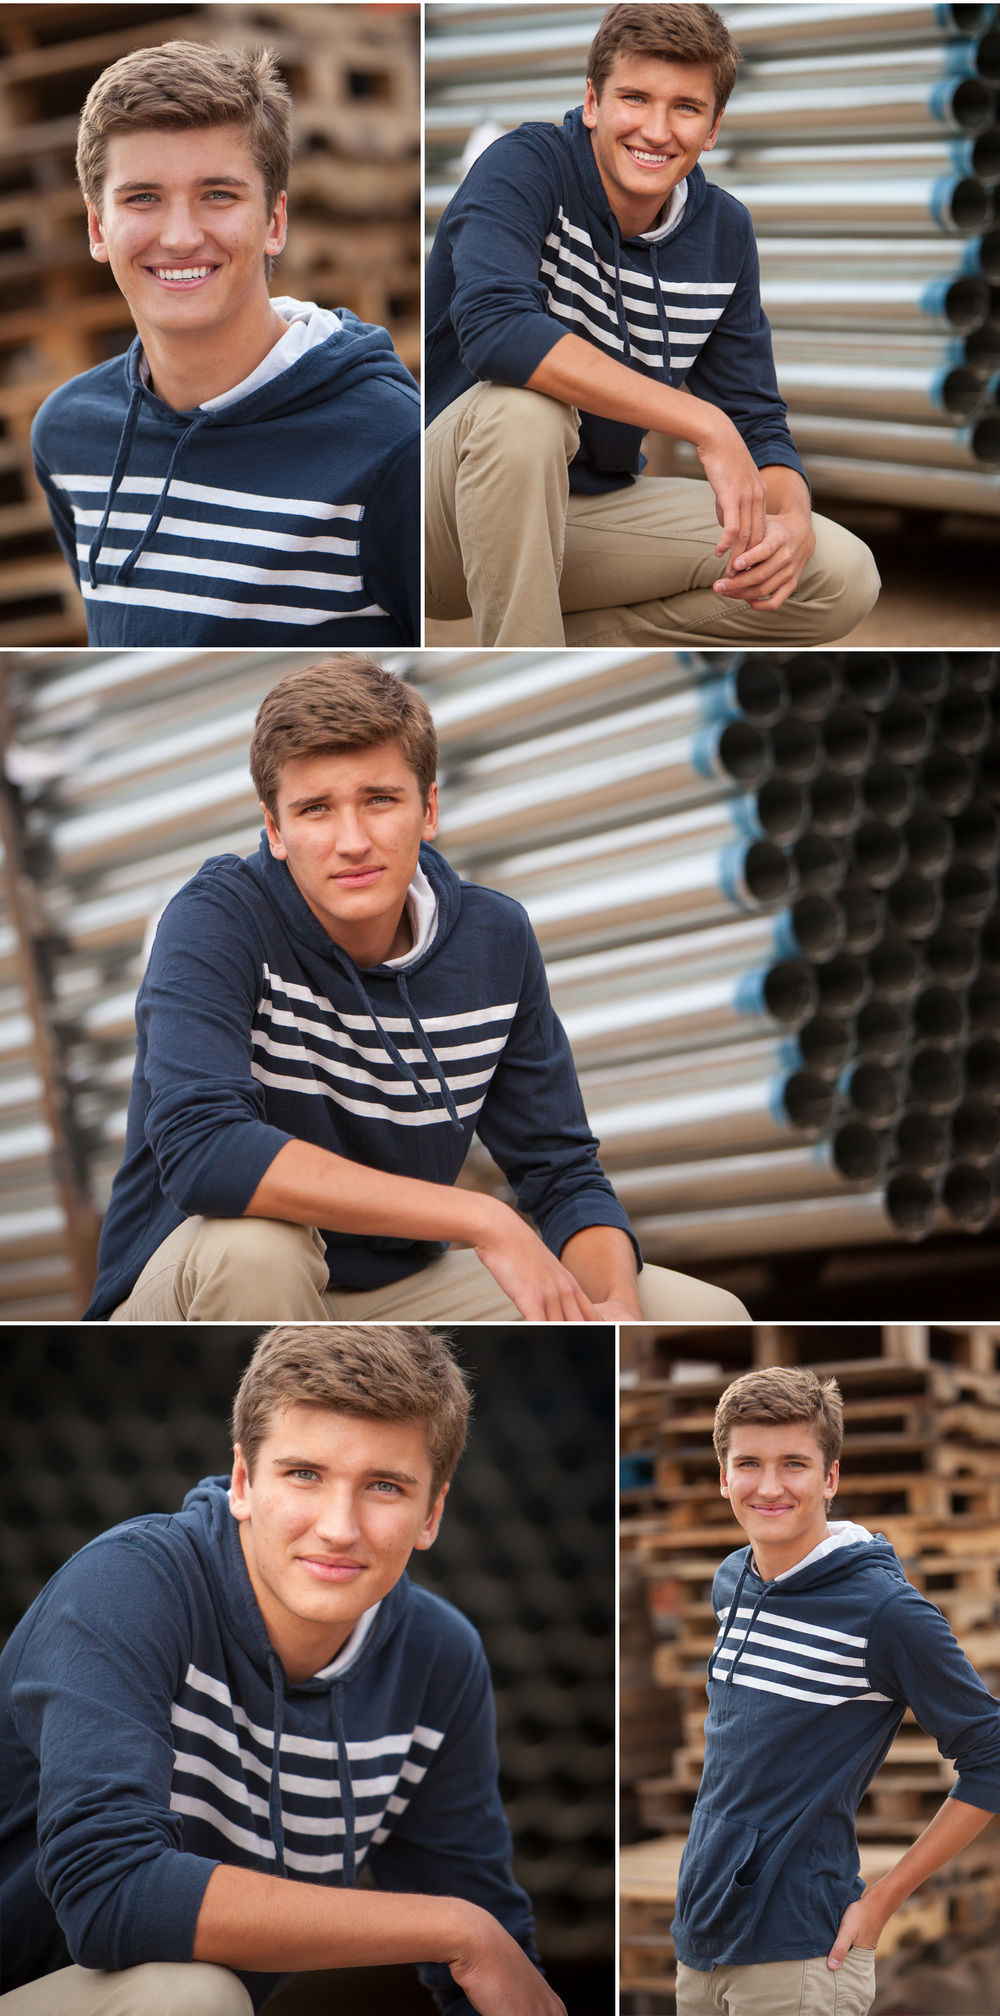 High school senior guy pictures in industrial setting in Denver with photographer Jennifer Koskinen | Merritt Portrait Studio